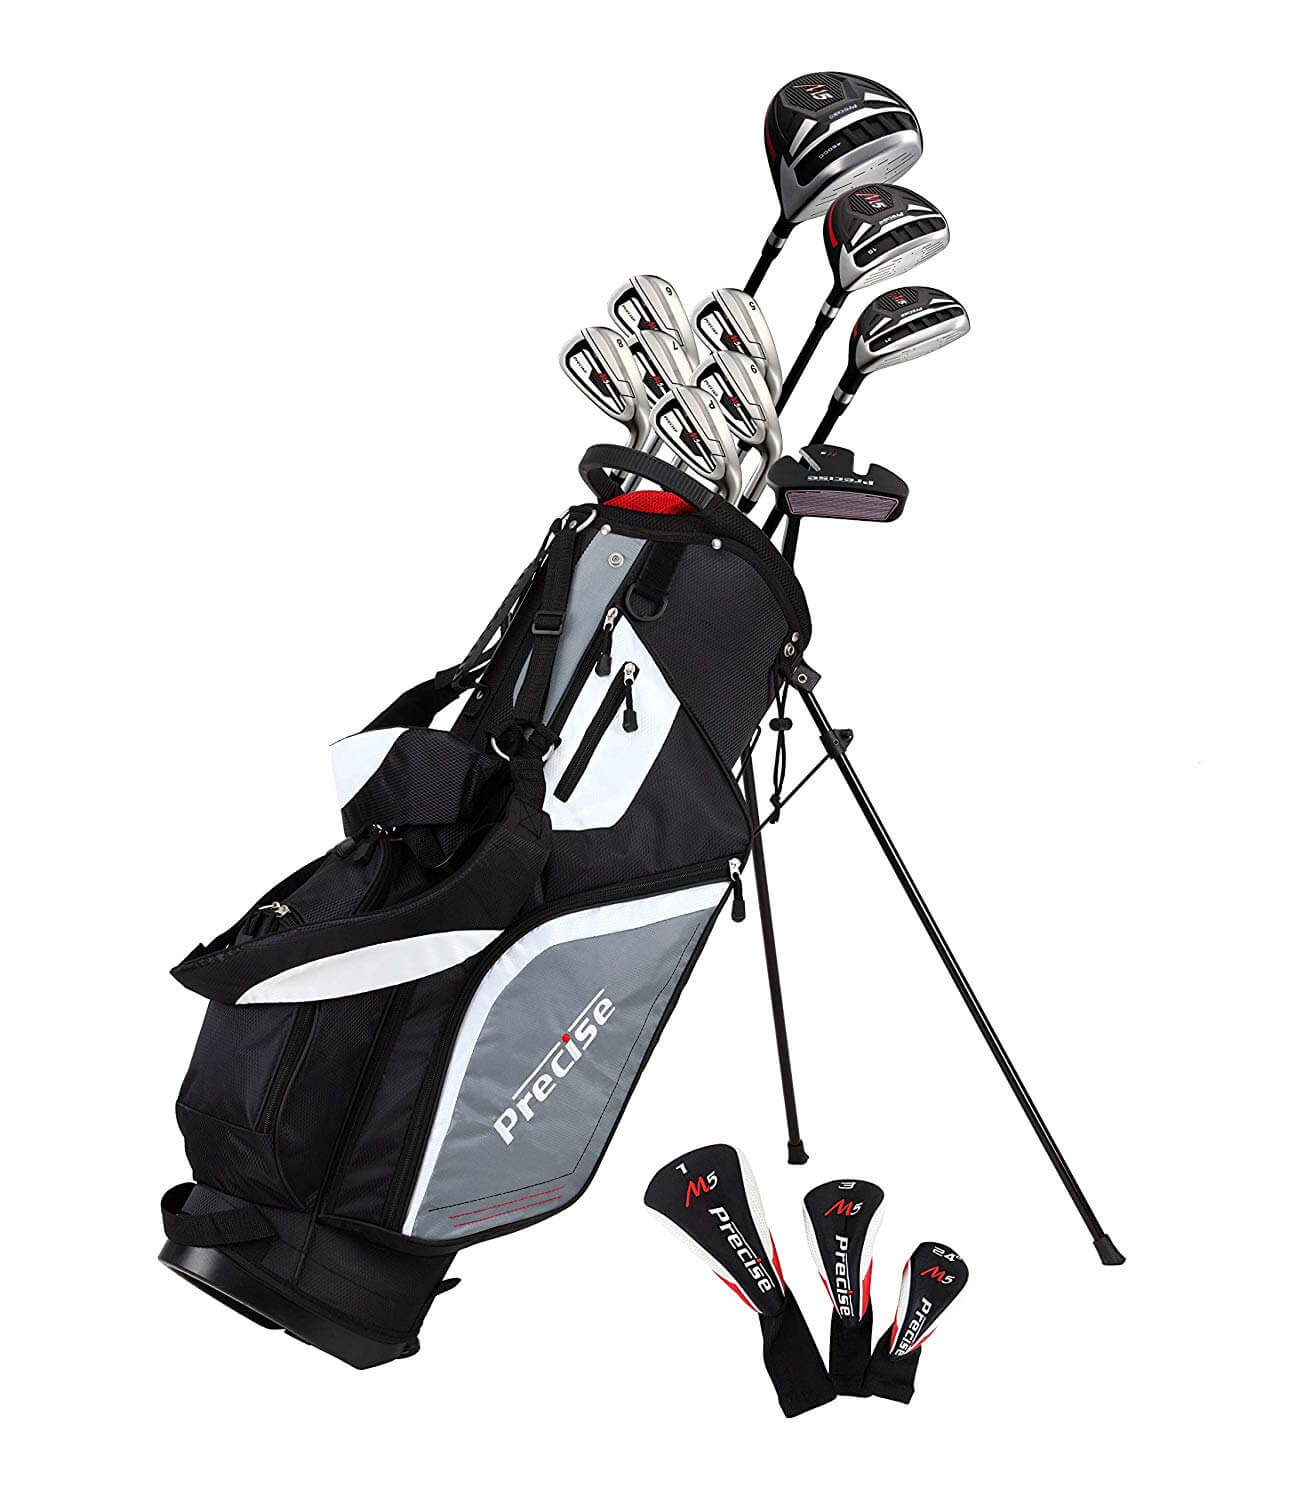 Precise M5 Complete Golf Clubs